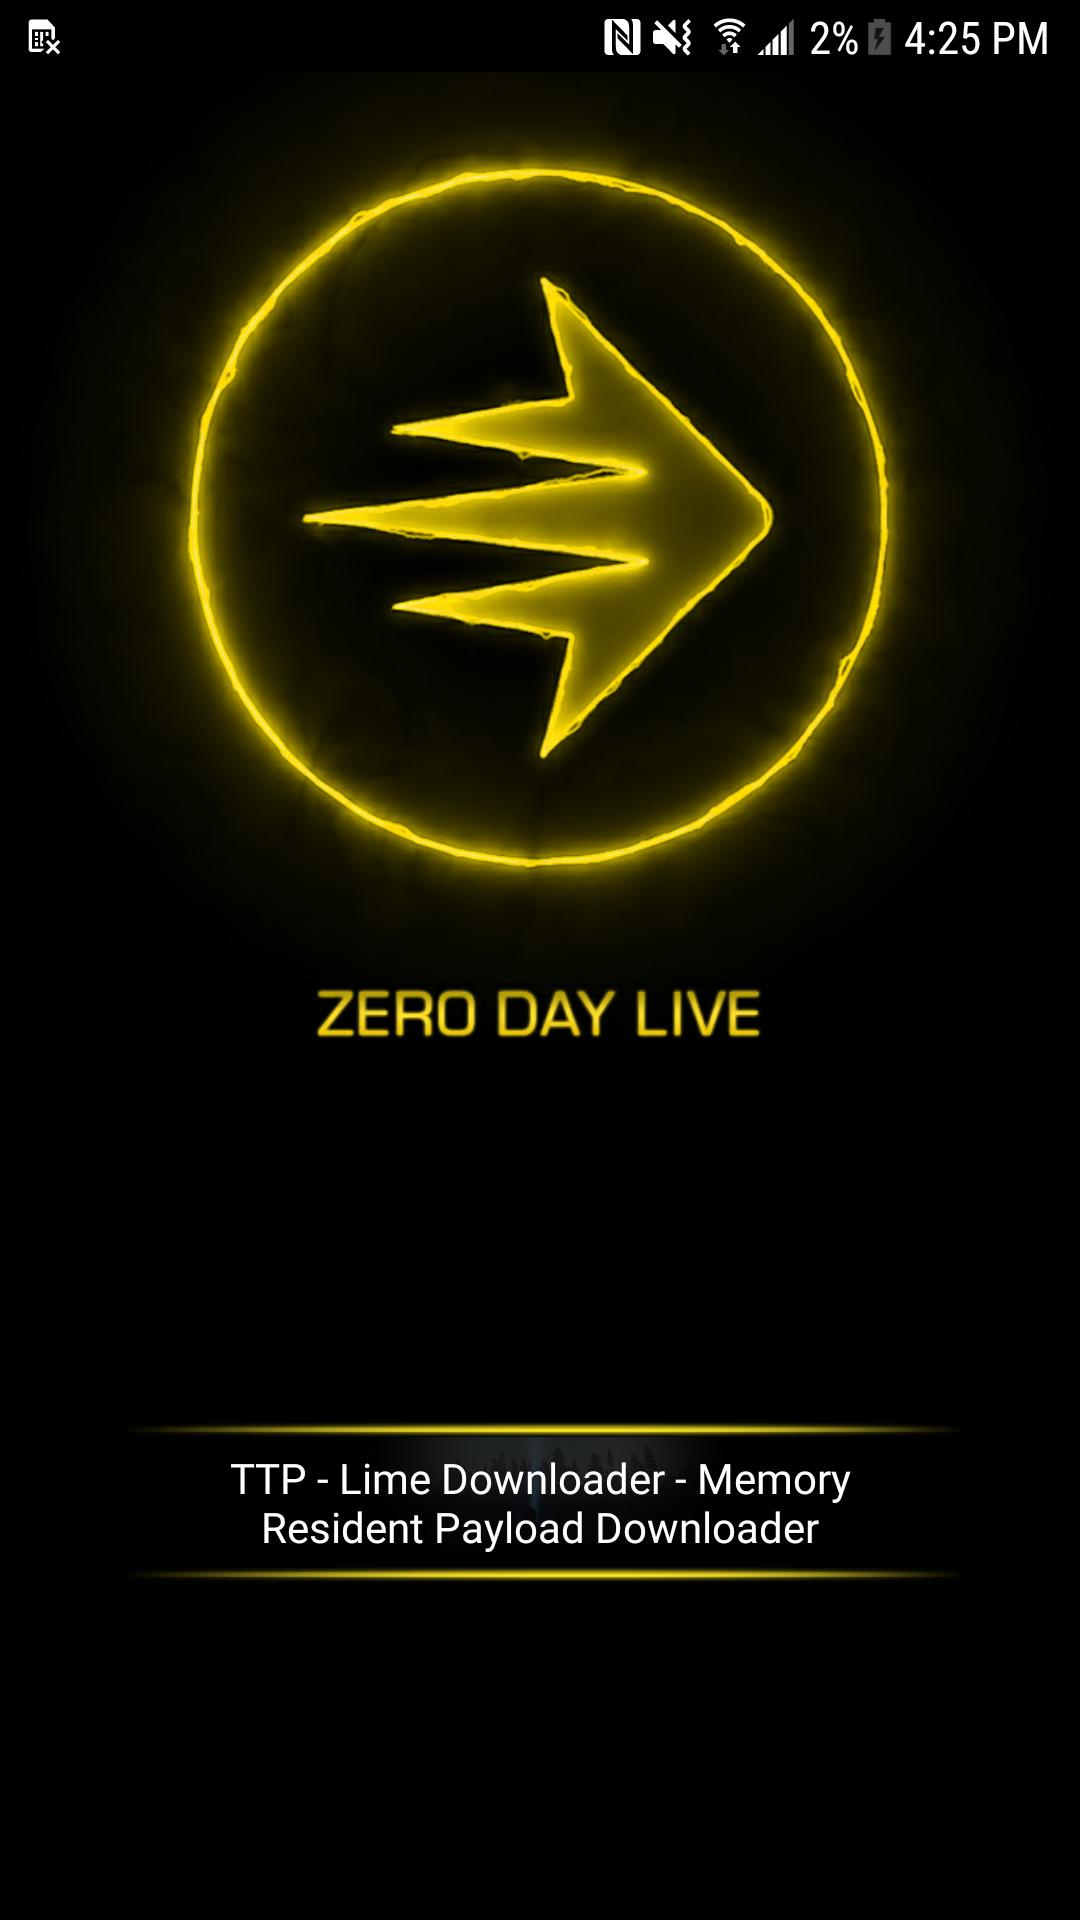 Zero Day Live (ZDL) for Android - APK Download